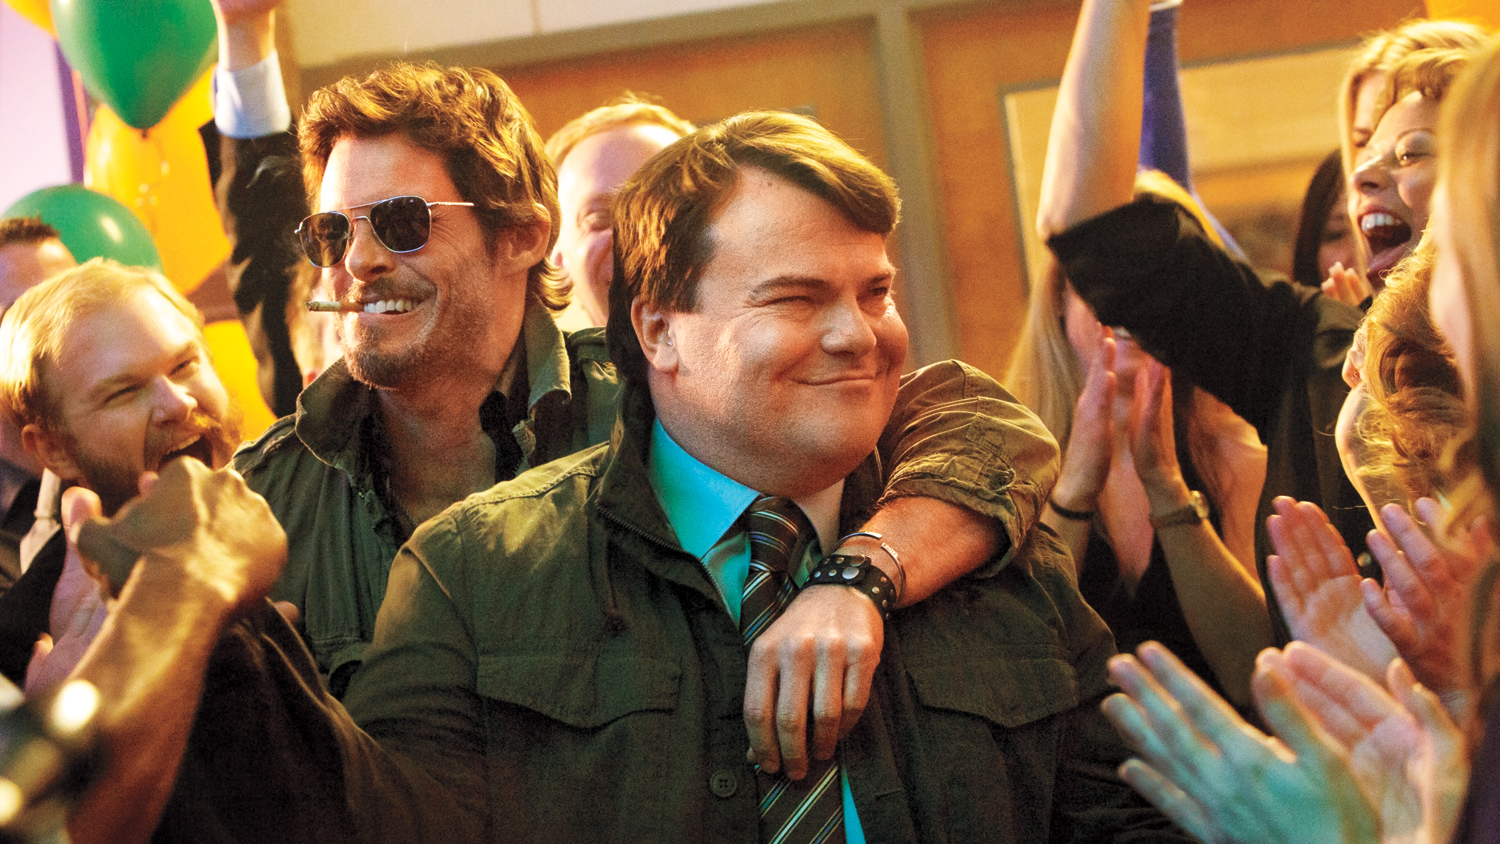 James Marsden and Jack Black in The D Train